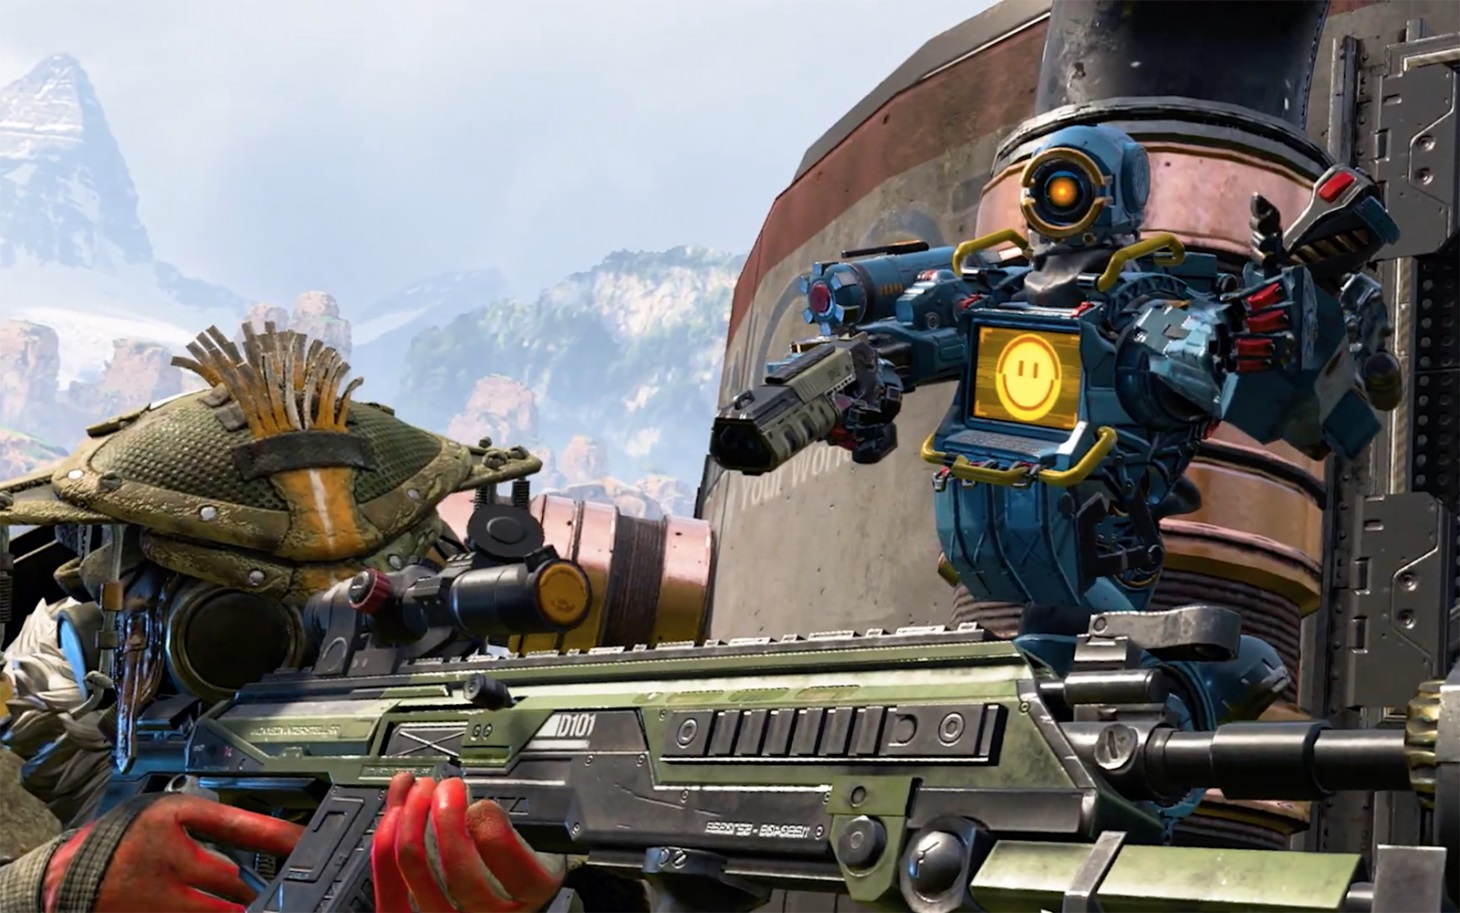 EA reportedly paid Ninja $1 million to promote Apex Legends photo